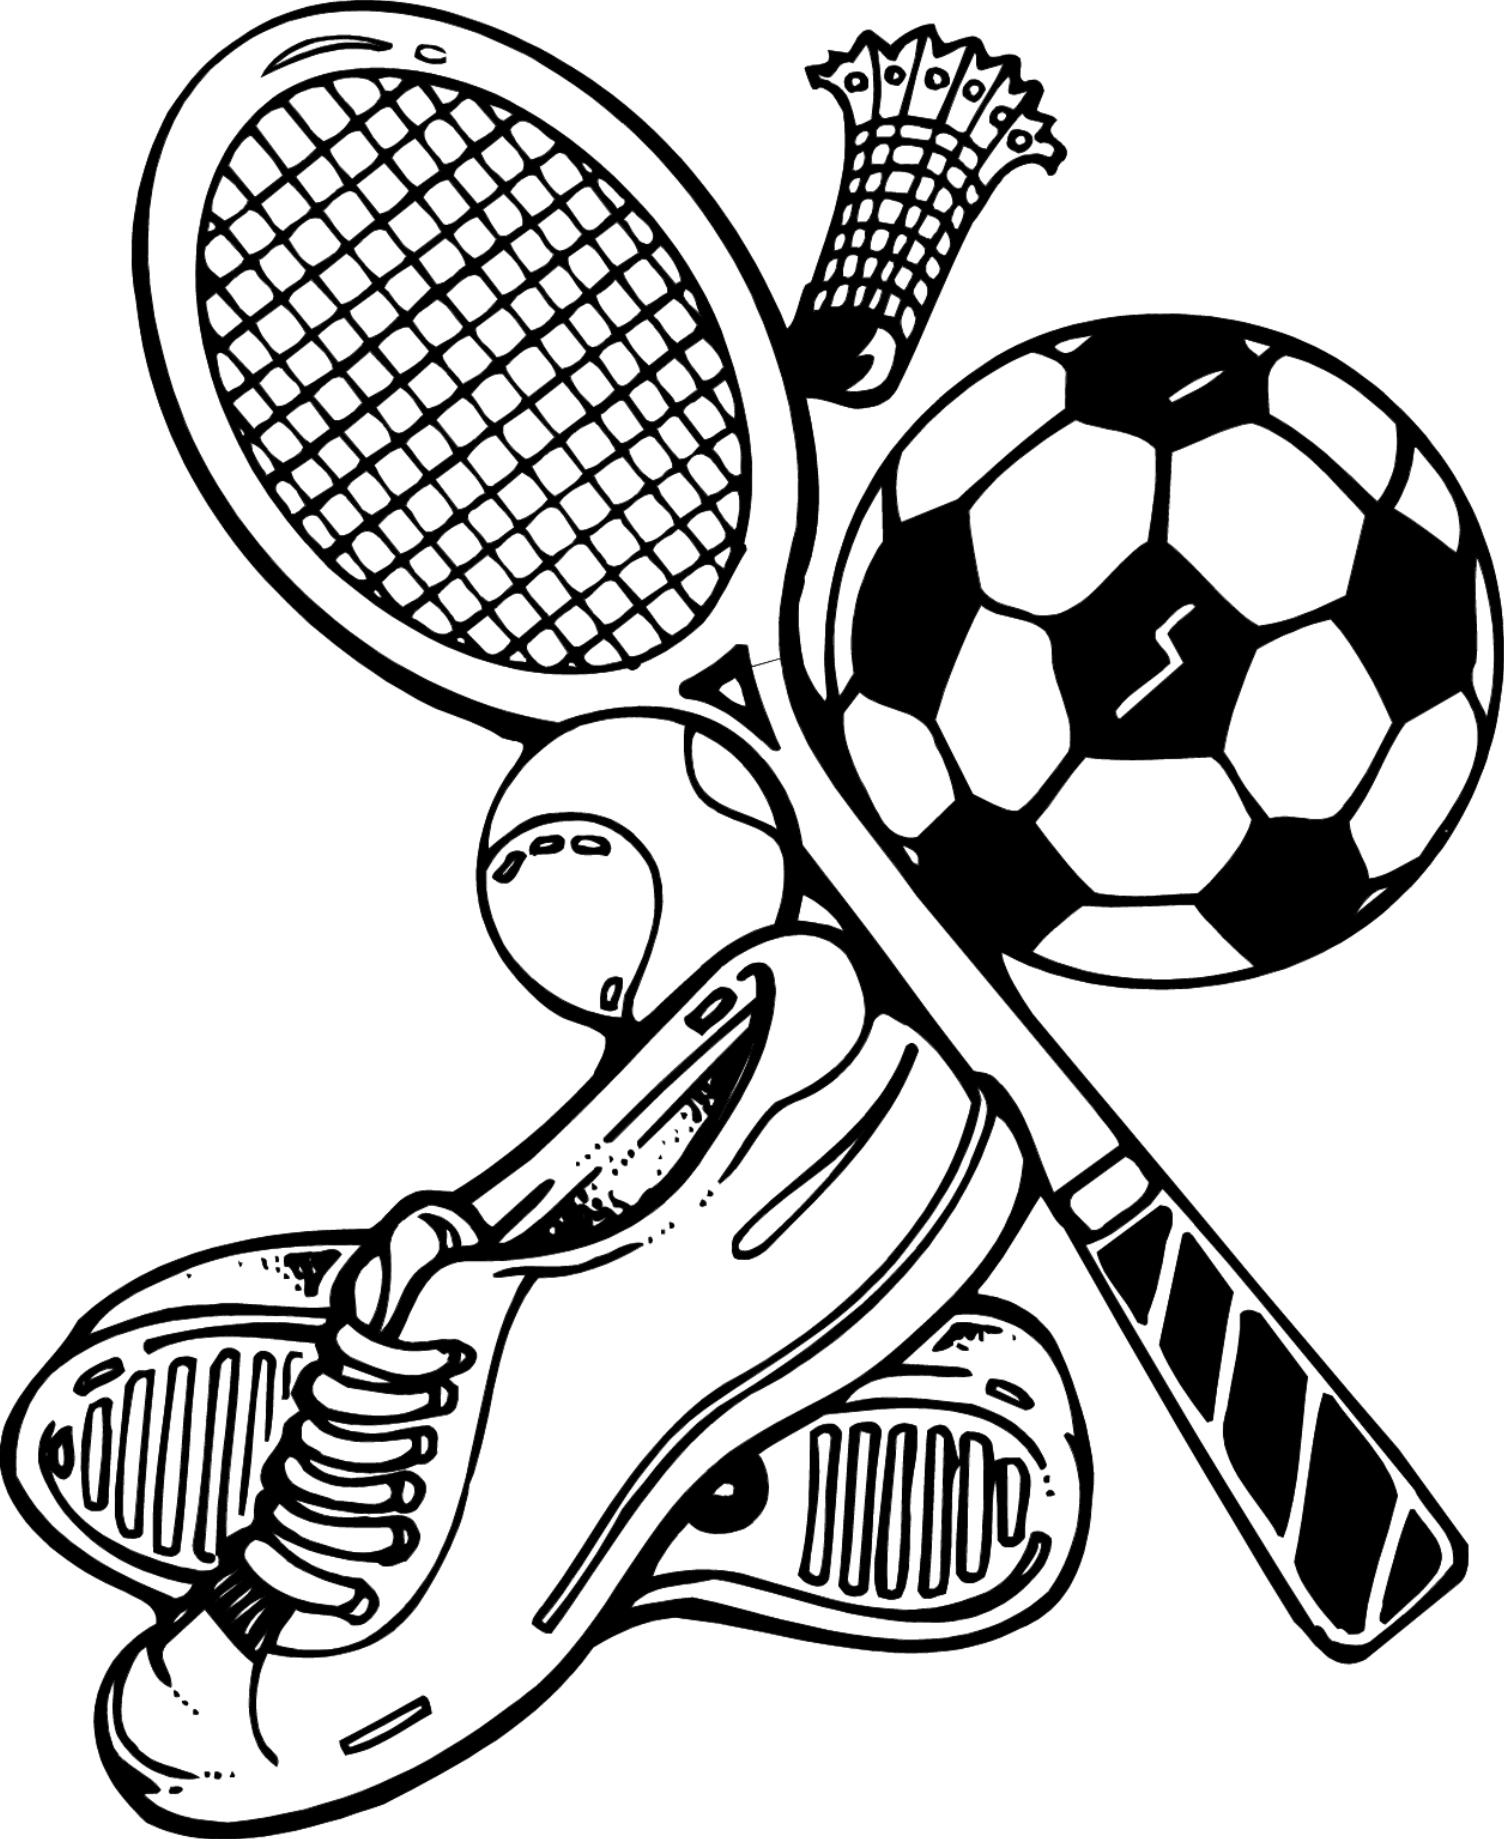 free printable sports coloring pages sports coloring pages coloring pages to print free pages coloring printable sports